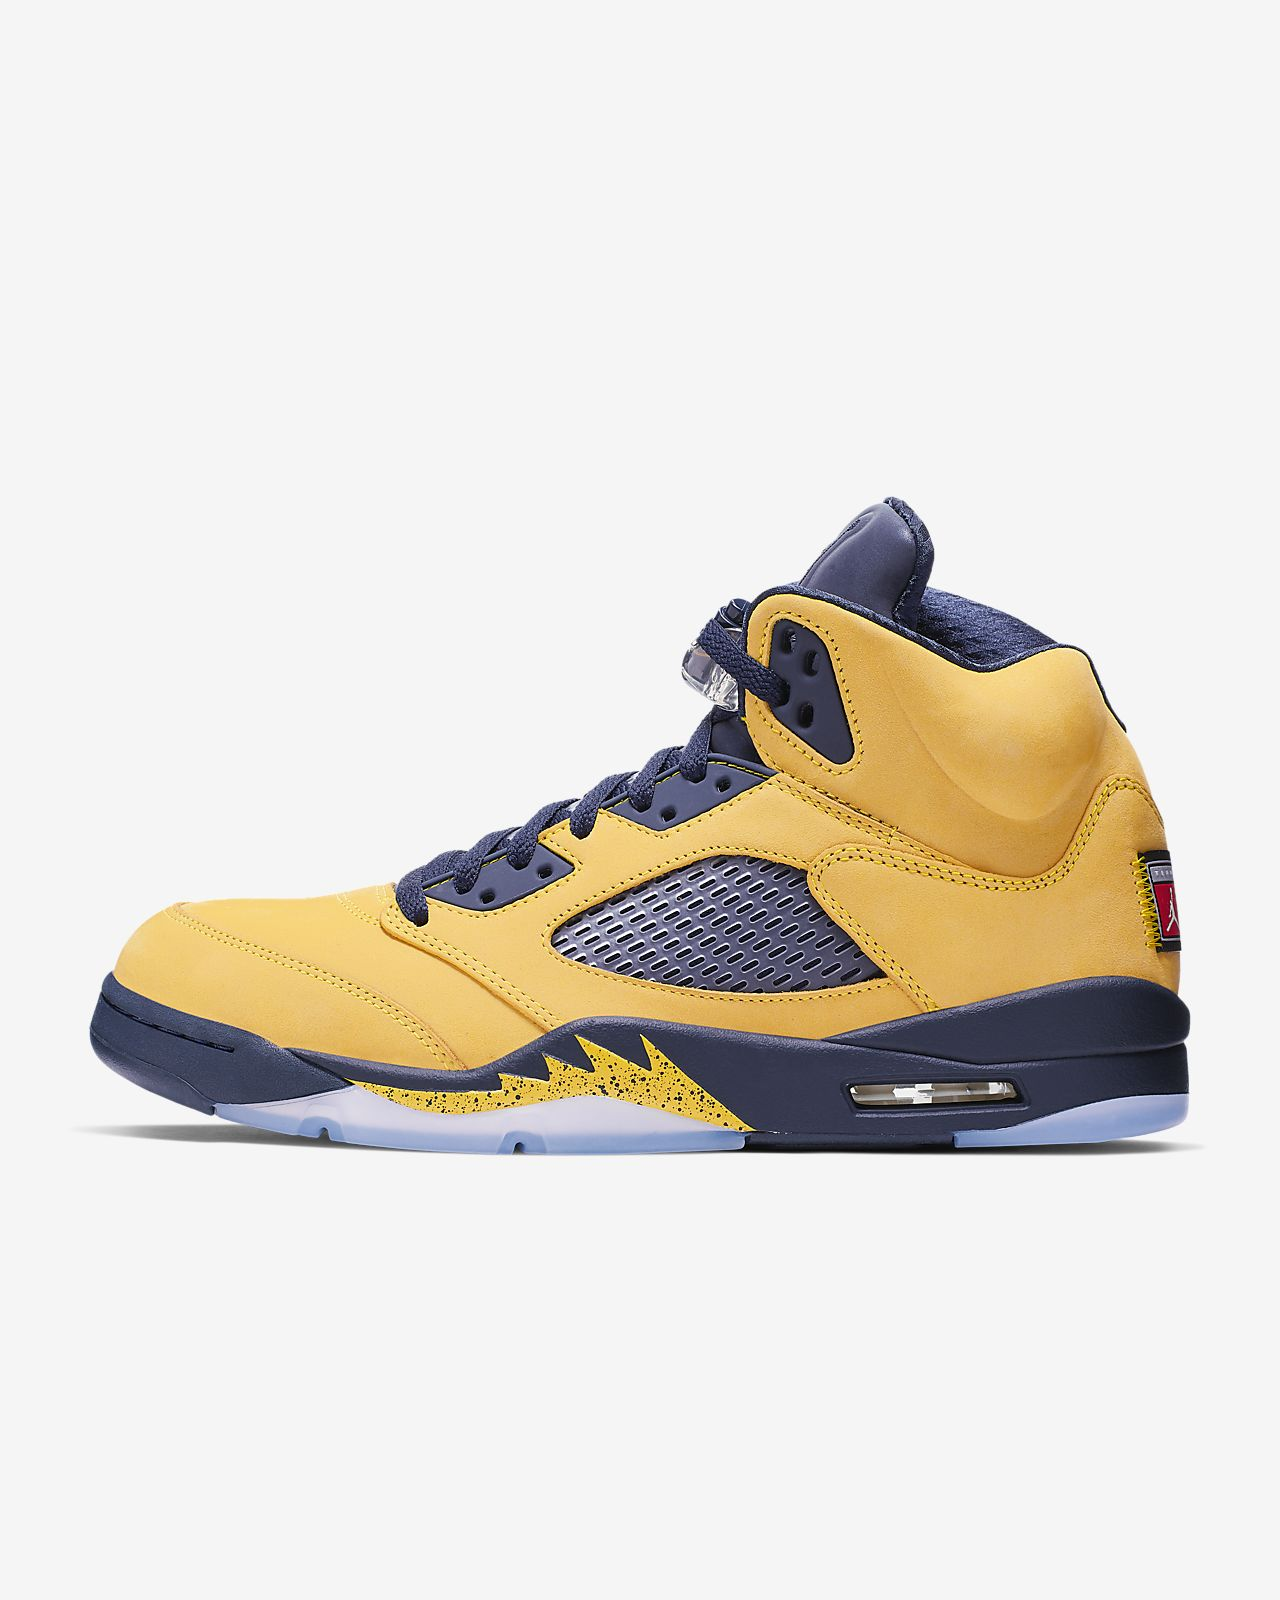 huge discount 1c258 8dbe0 ... Air Jordan 5 Retro SE Men s Shoe